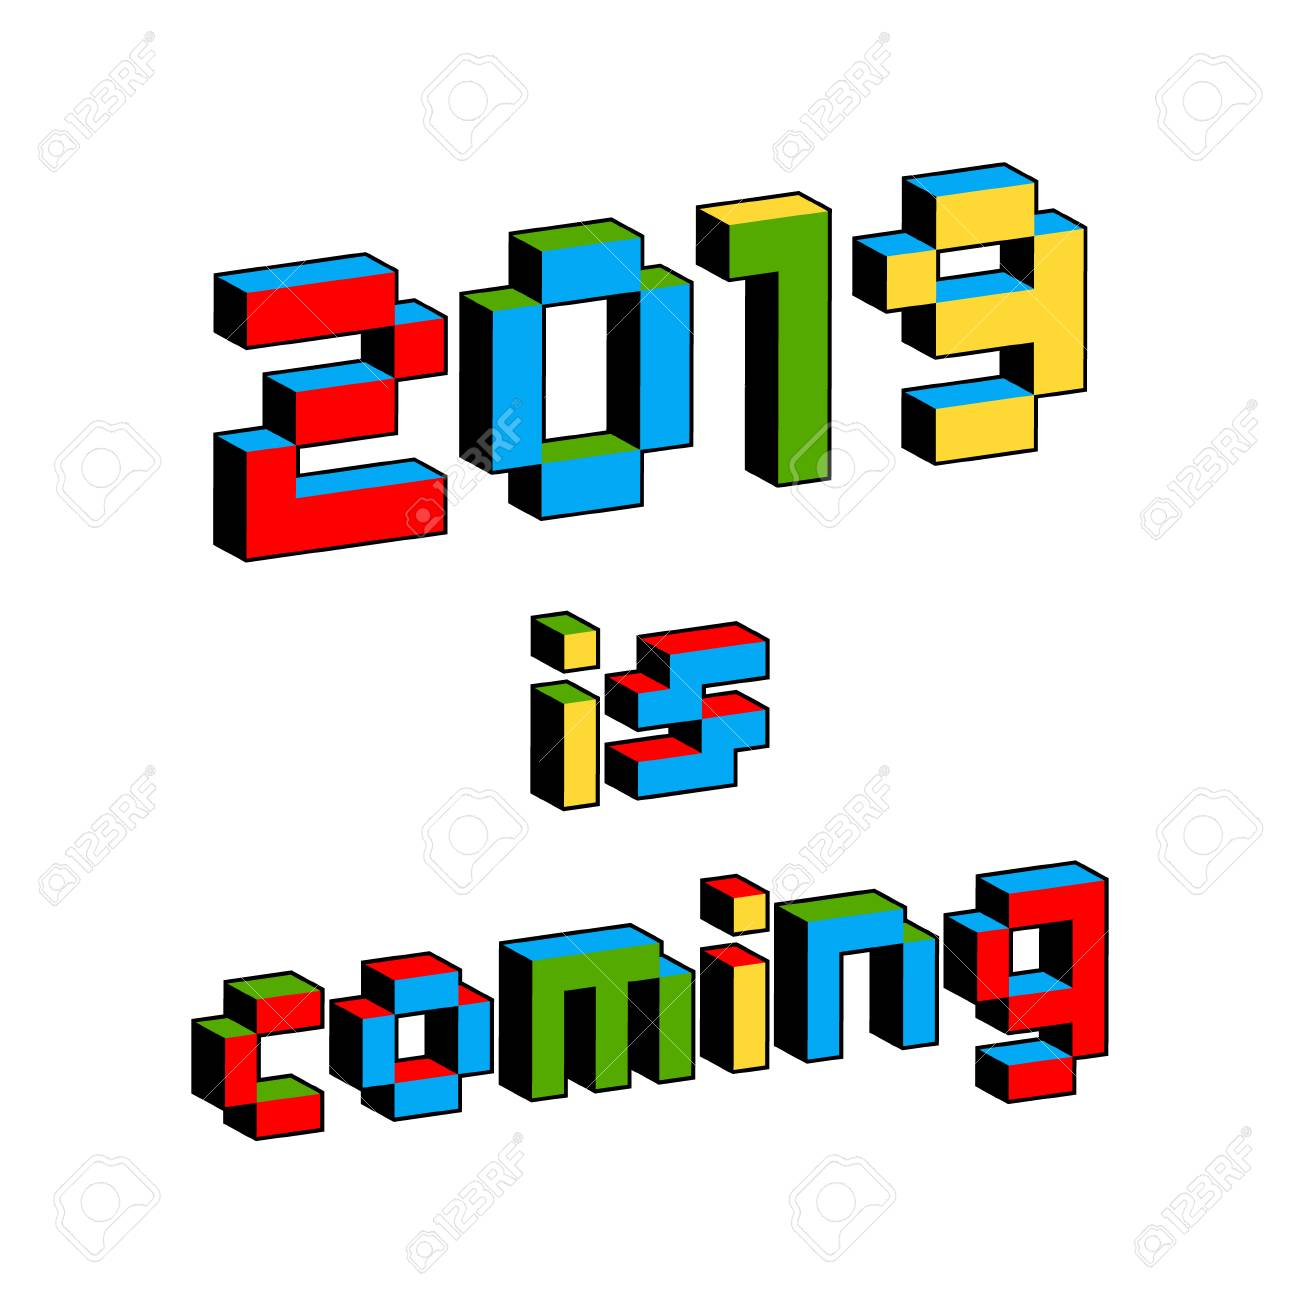 2019 Is Coming text in style of old 8-bit video games  Vibrant